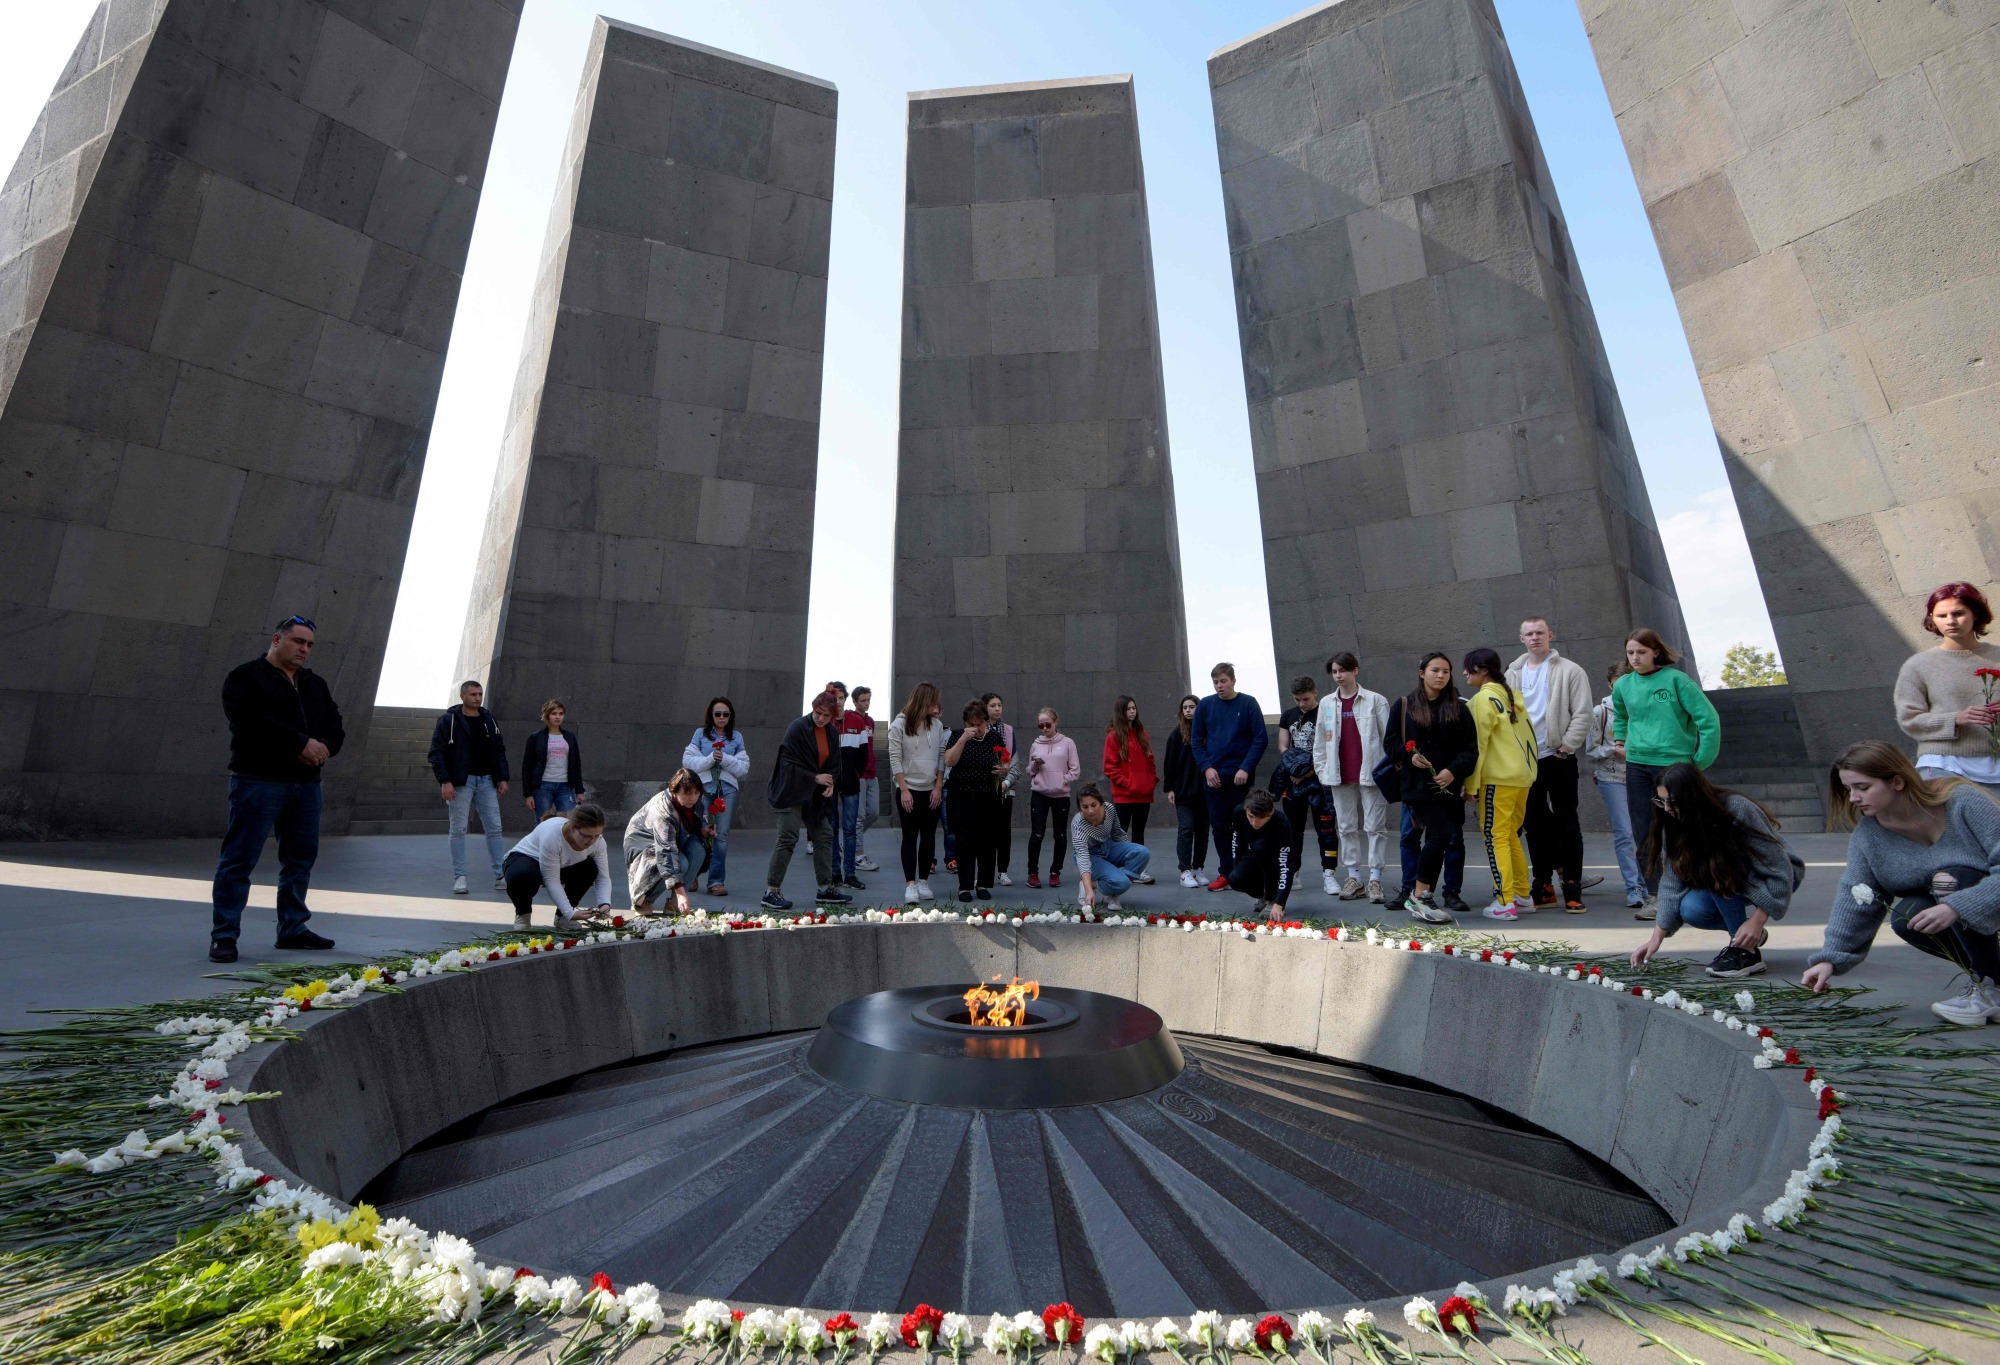 People visit the Tsitsernakaberd Armenian Genocide Memorial in Yerevan Wednesday. Armenians rejoiced over the historic vote in the U.S. House of Representatives that recognized as 'genocide' mass killings of ethnic Armenians in the Ottoman Empire a century ago. | AFP-JIJI